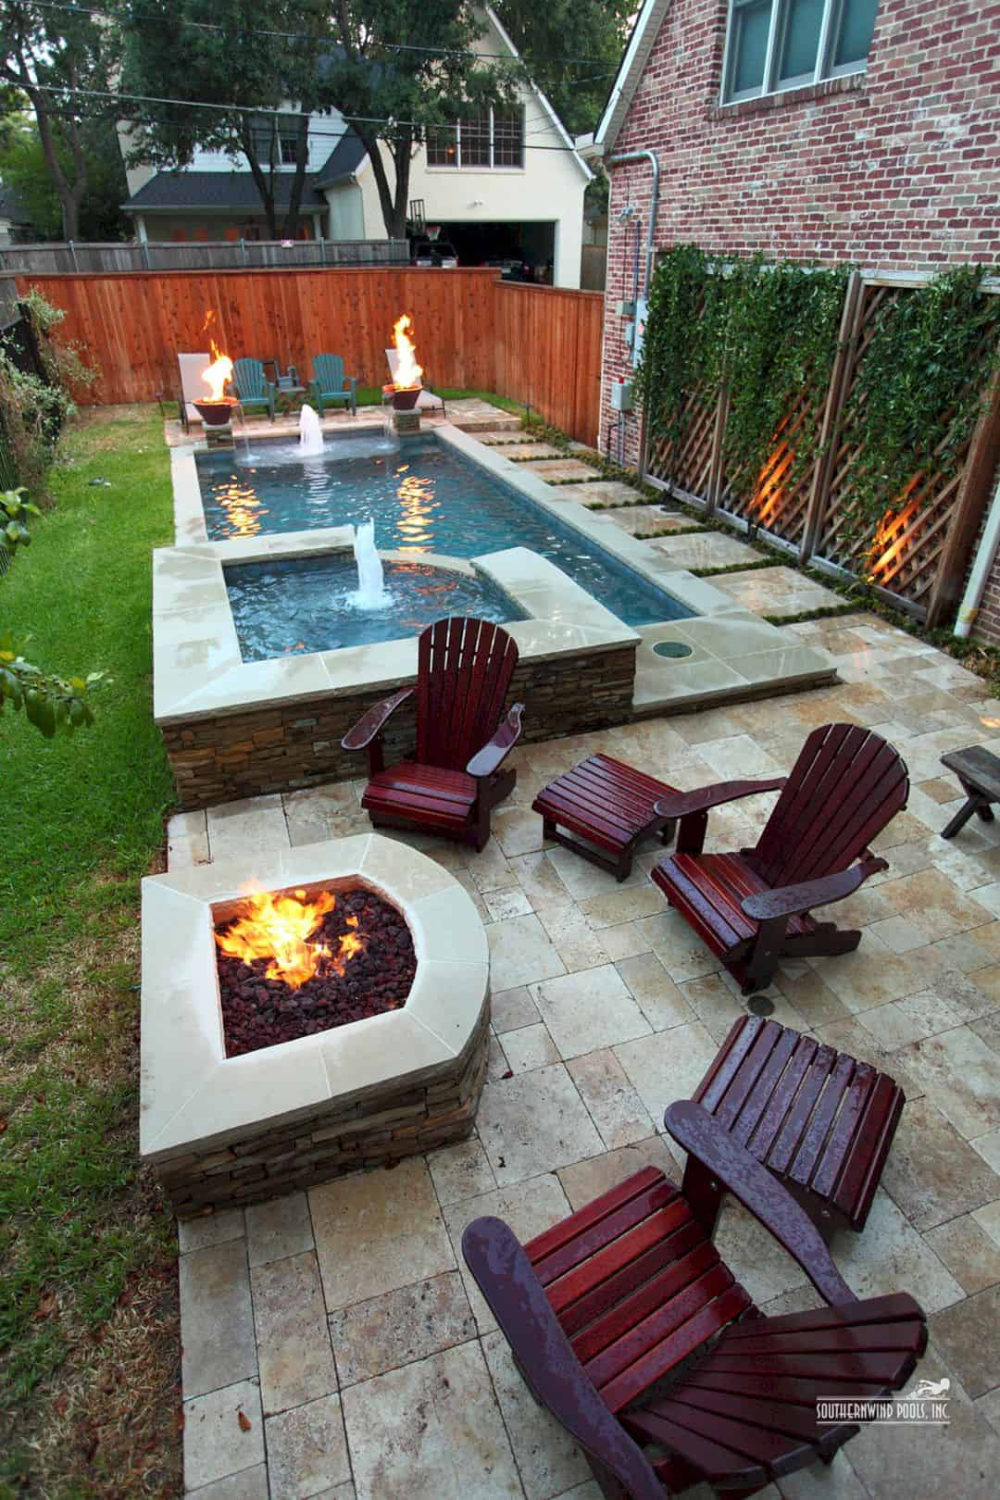 Coolest Small Pool Ideas With 9 Basic Preparation Tips Futurist Architecture Narrow Backyard Ideas Small Backyard Pools Small Backyard Design